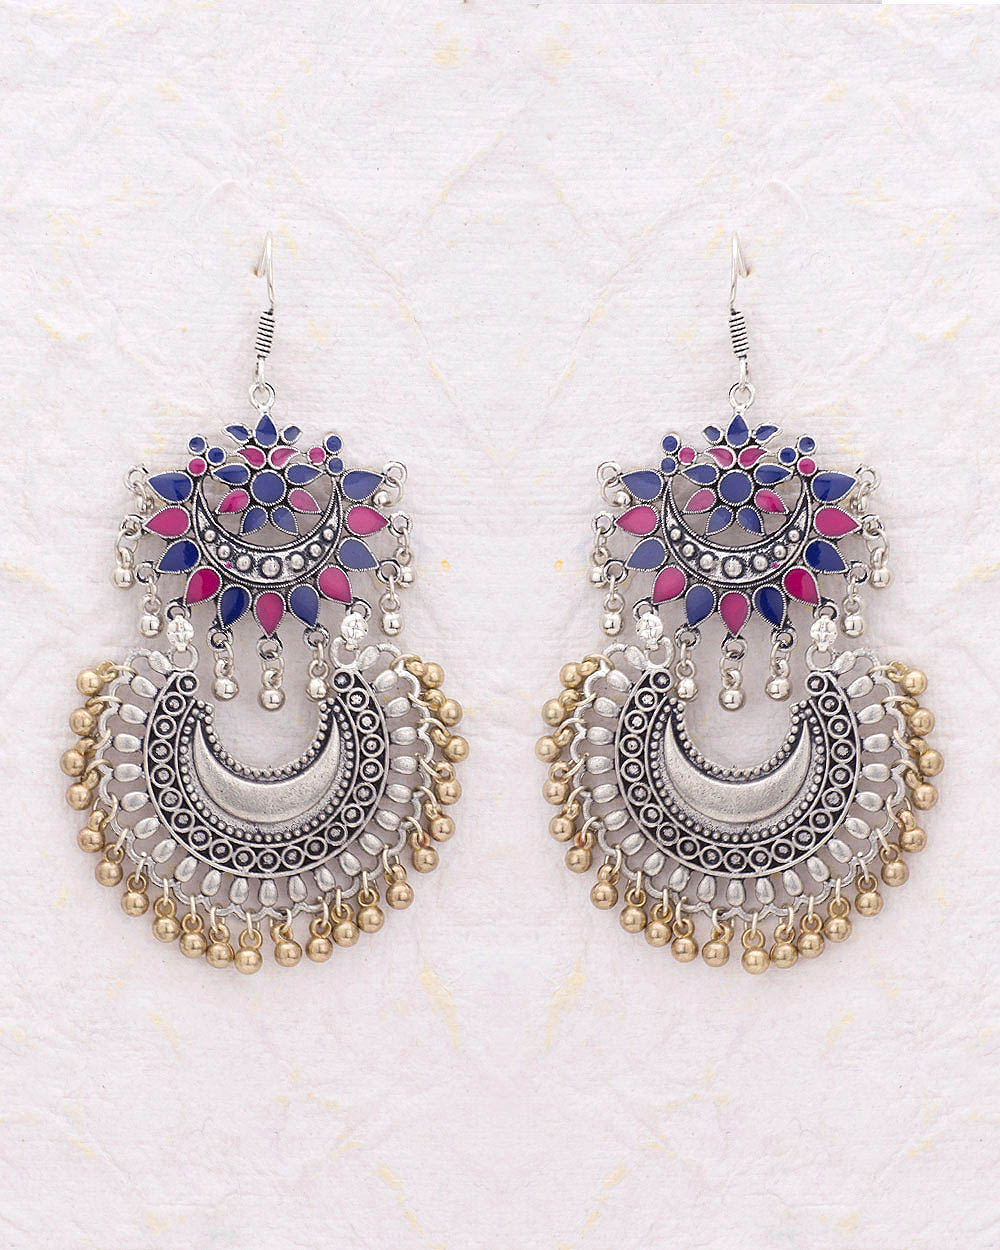 Buy Chandbali Earrings with Beautiful Enameling Online India | Voylla